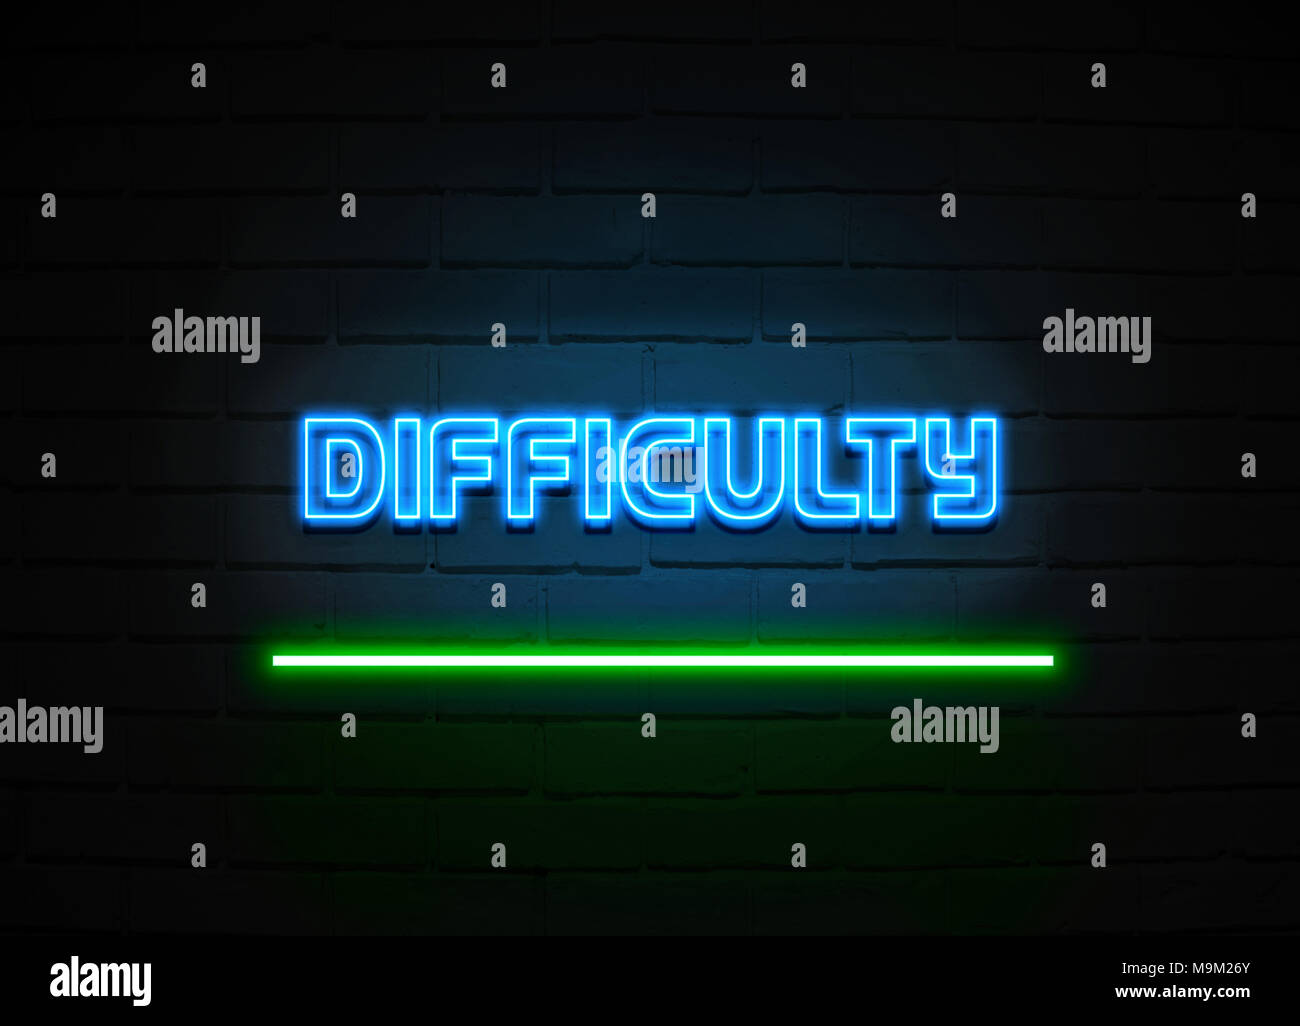 Difficulty neon sign - Glowing Neon Sign on brickwall wall - 3D rendered royalty free stock illustration. - Stock Image